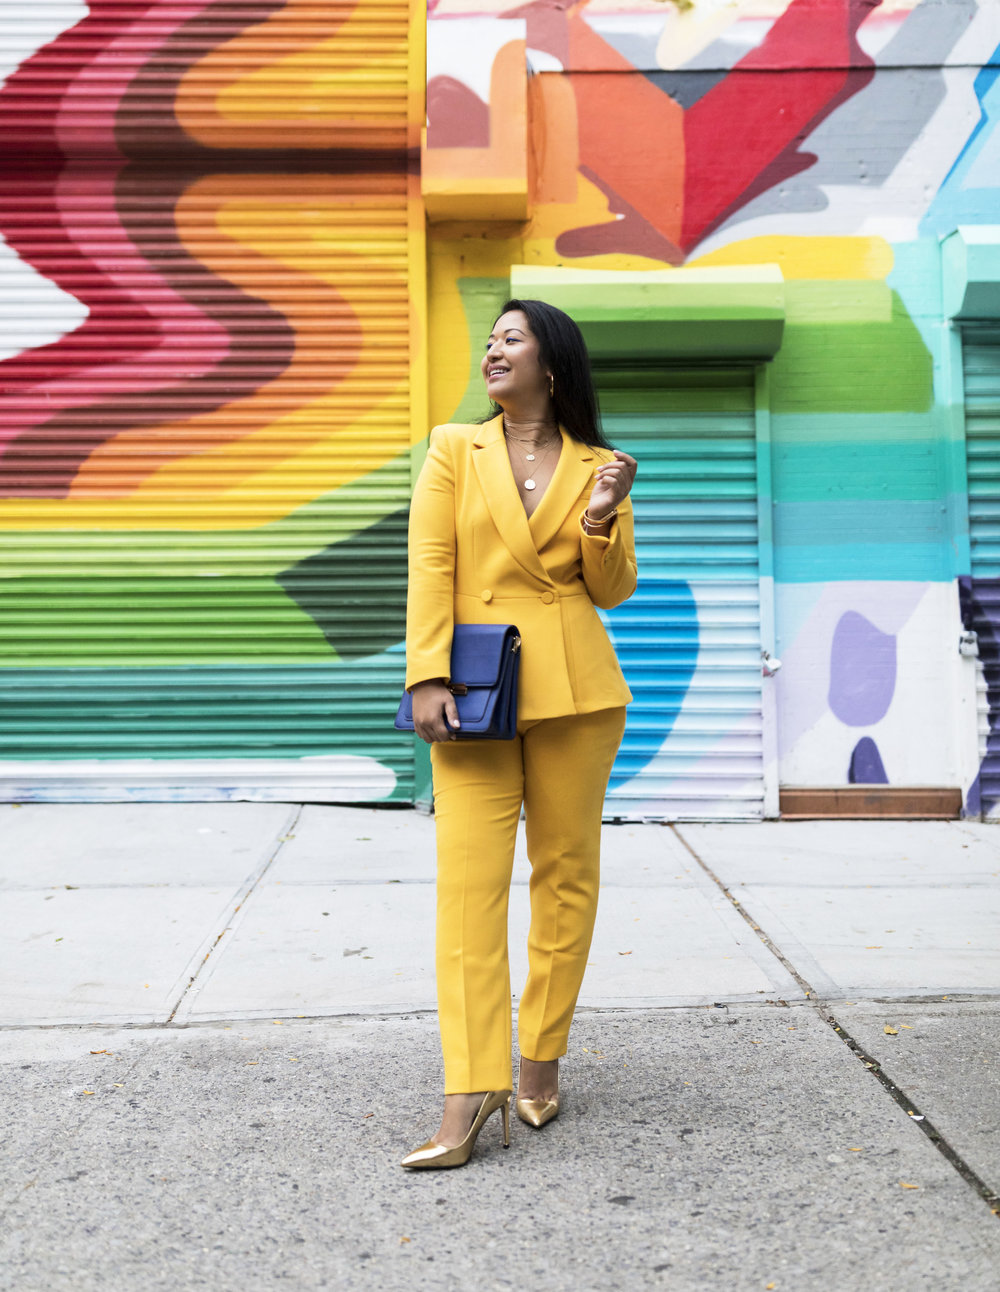 Krity S x Yellow Suit1.jpg